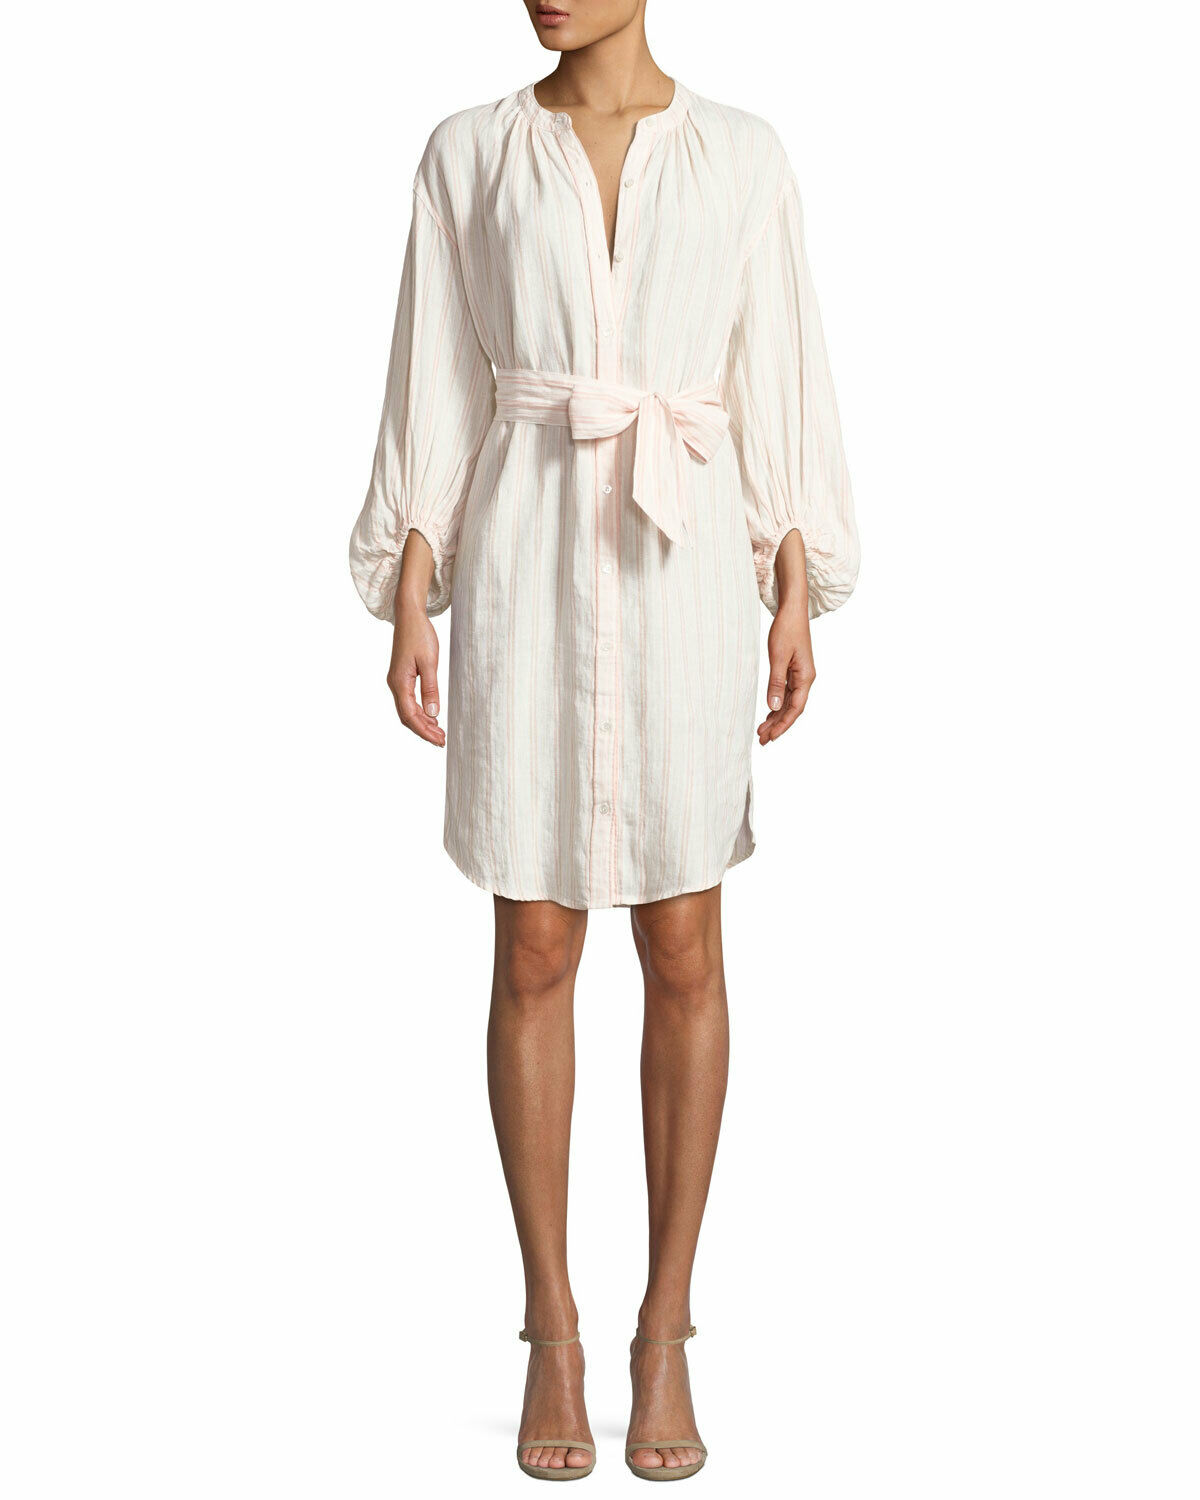 NEW Joie Beatrissa Dress in Ivory Pink - Size M